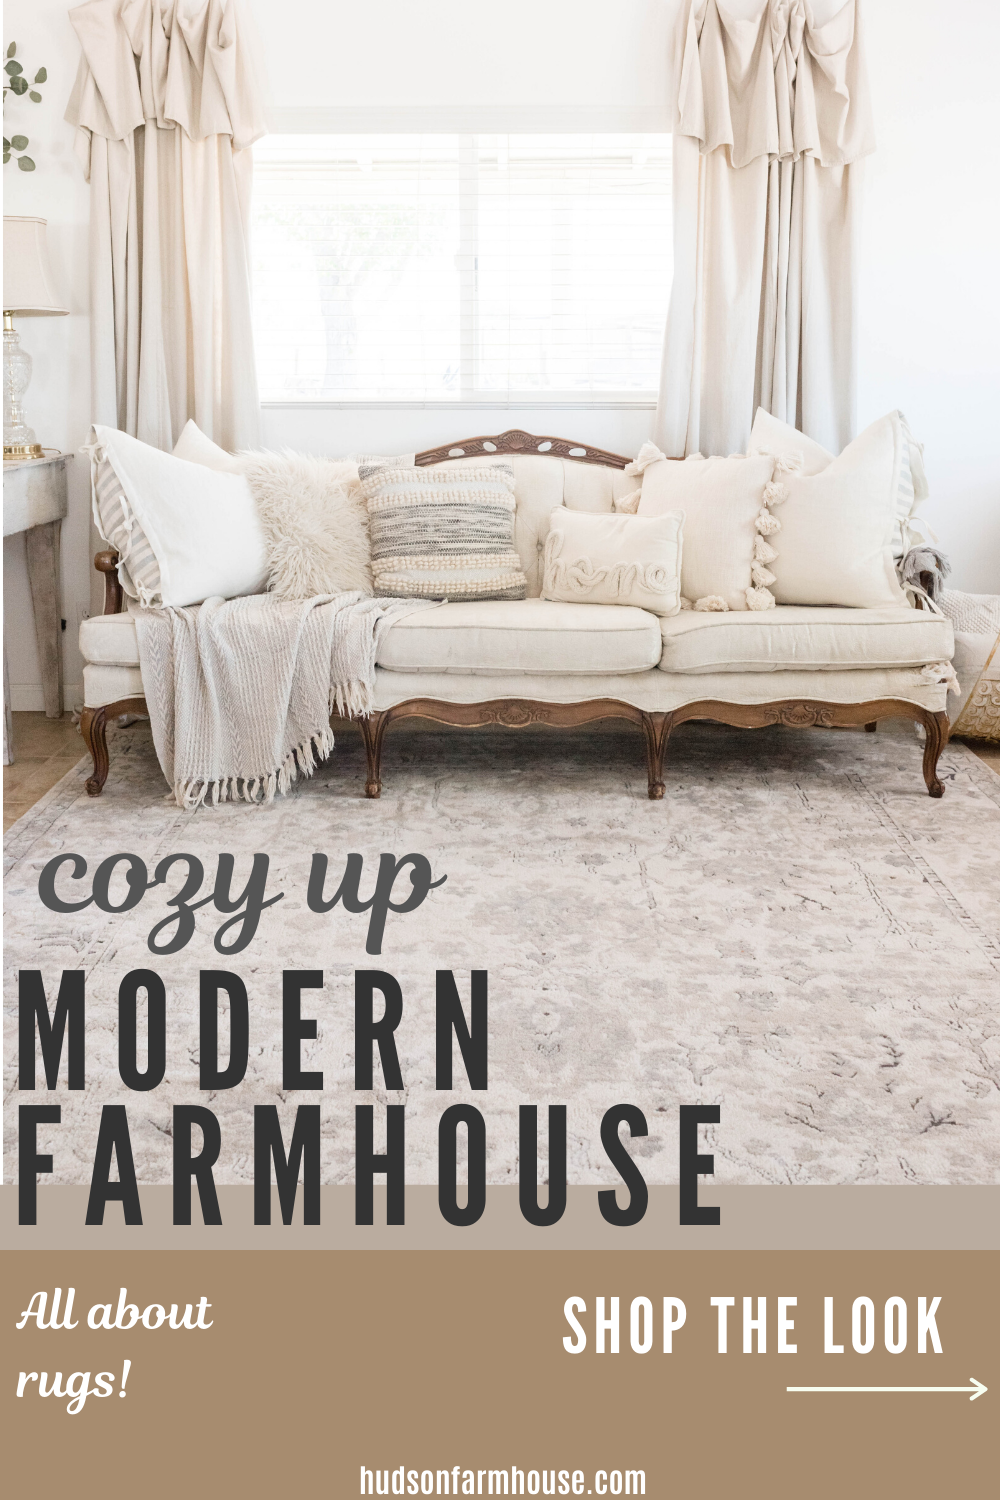 rugs in farmhouse